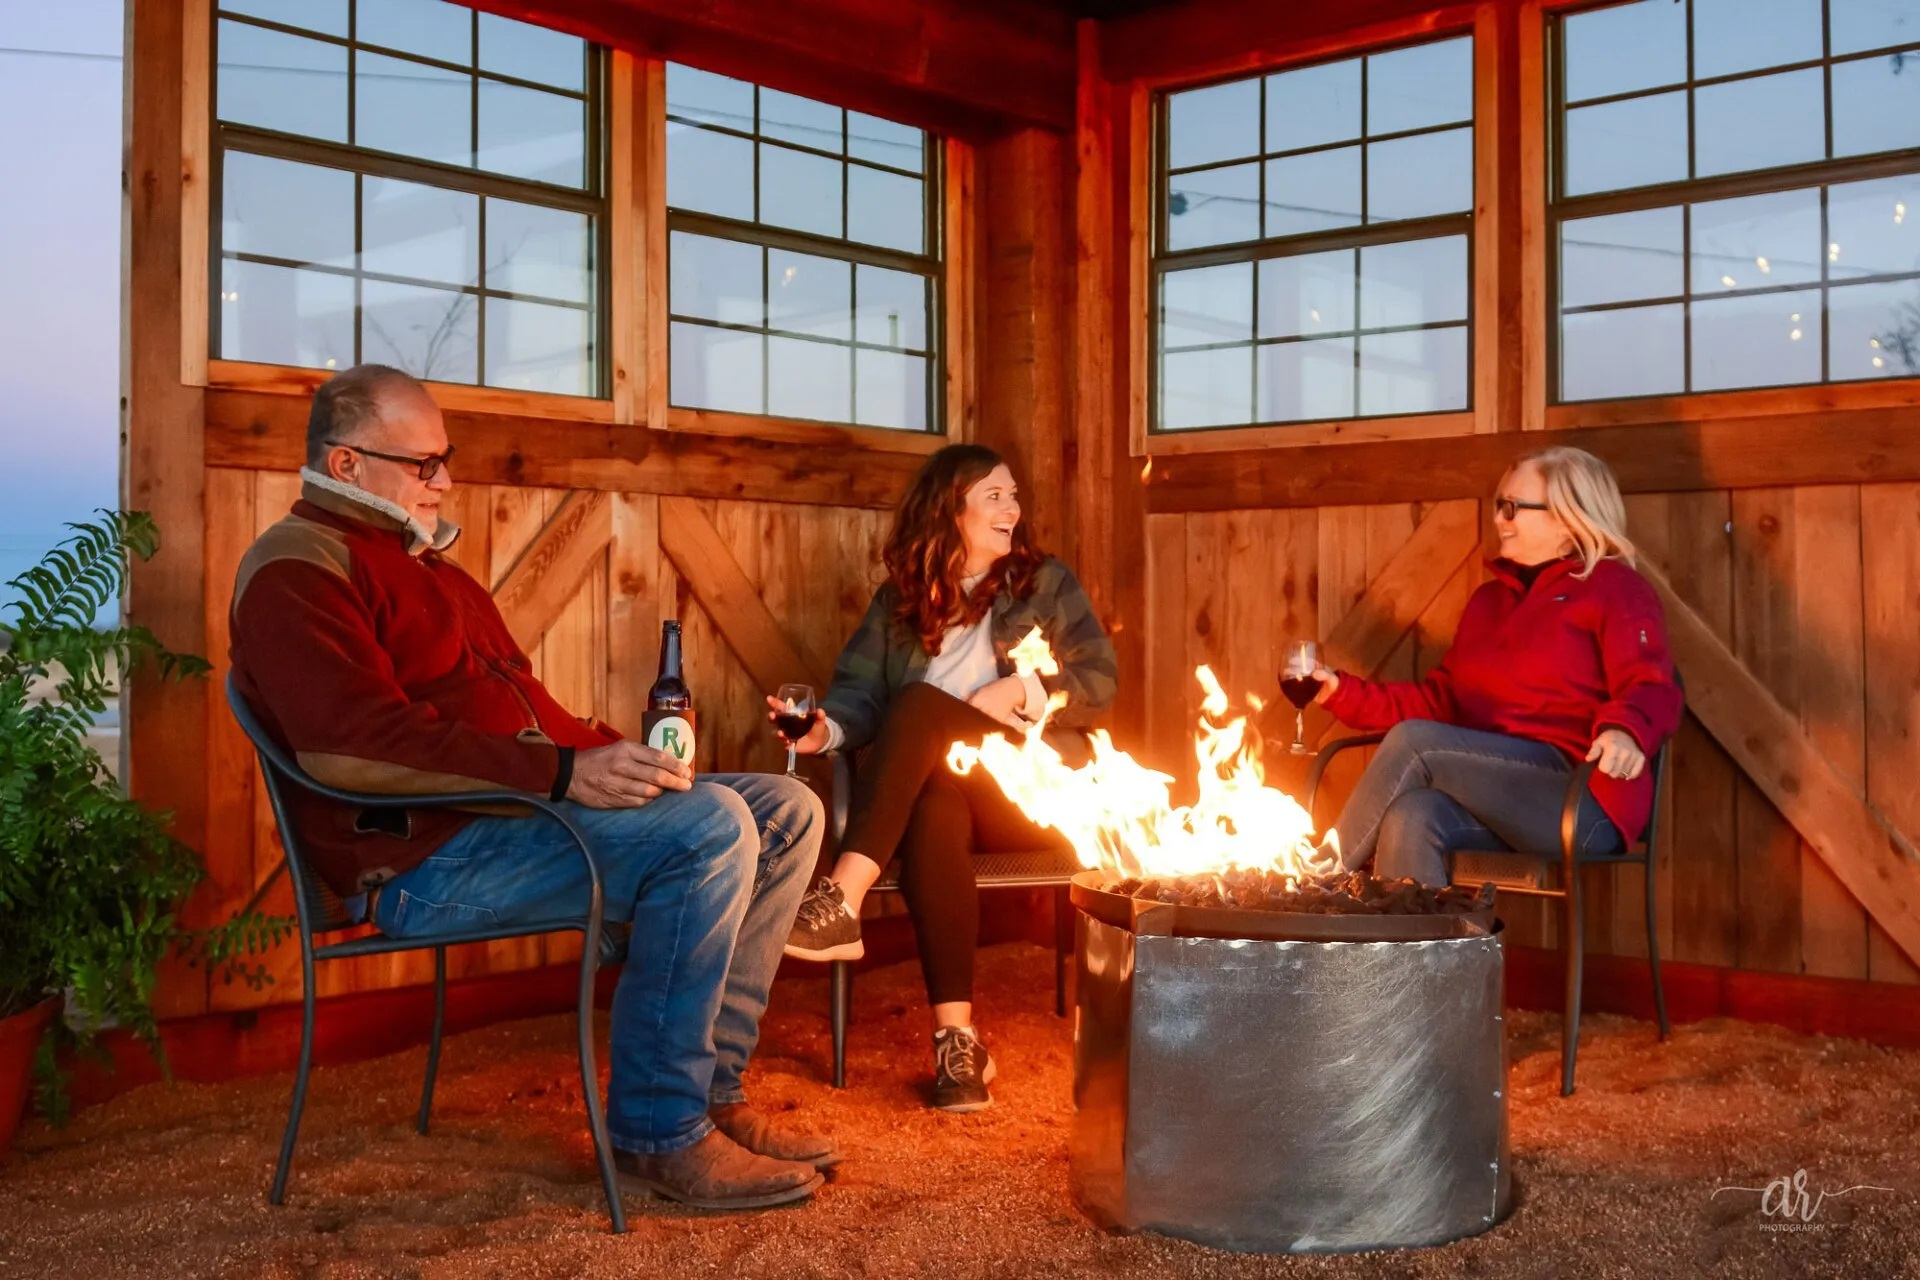 Three campers gathered around a fire in a enclosed space.